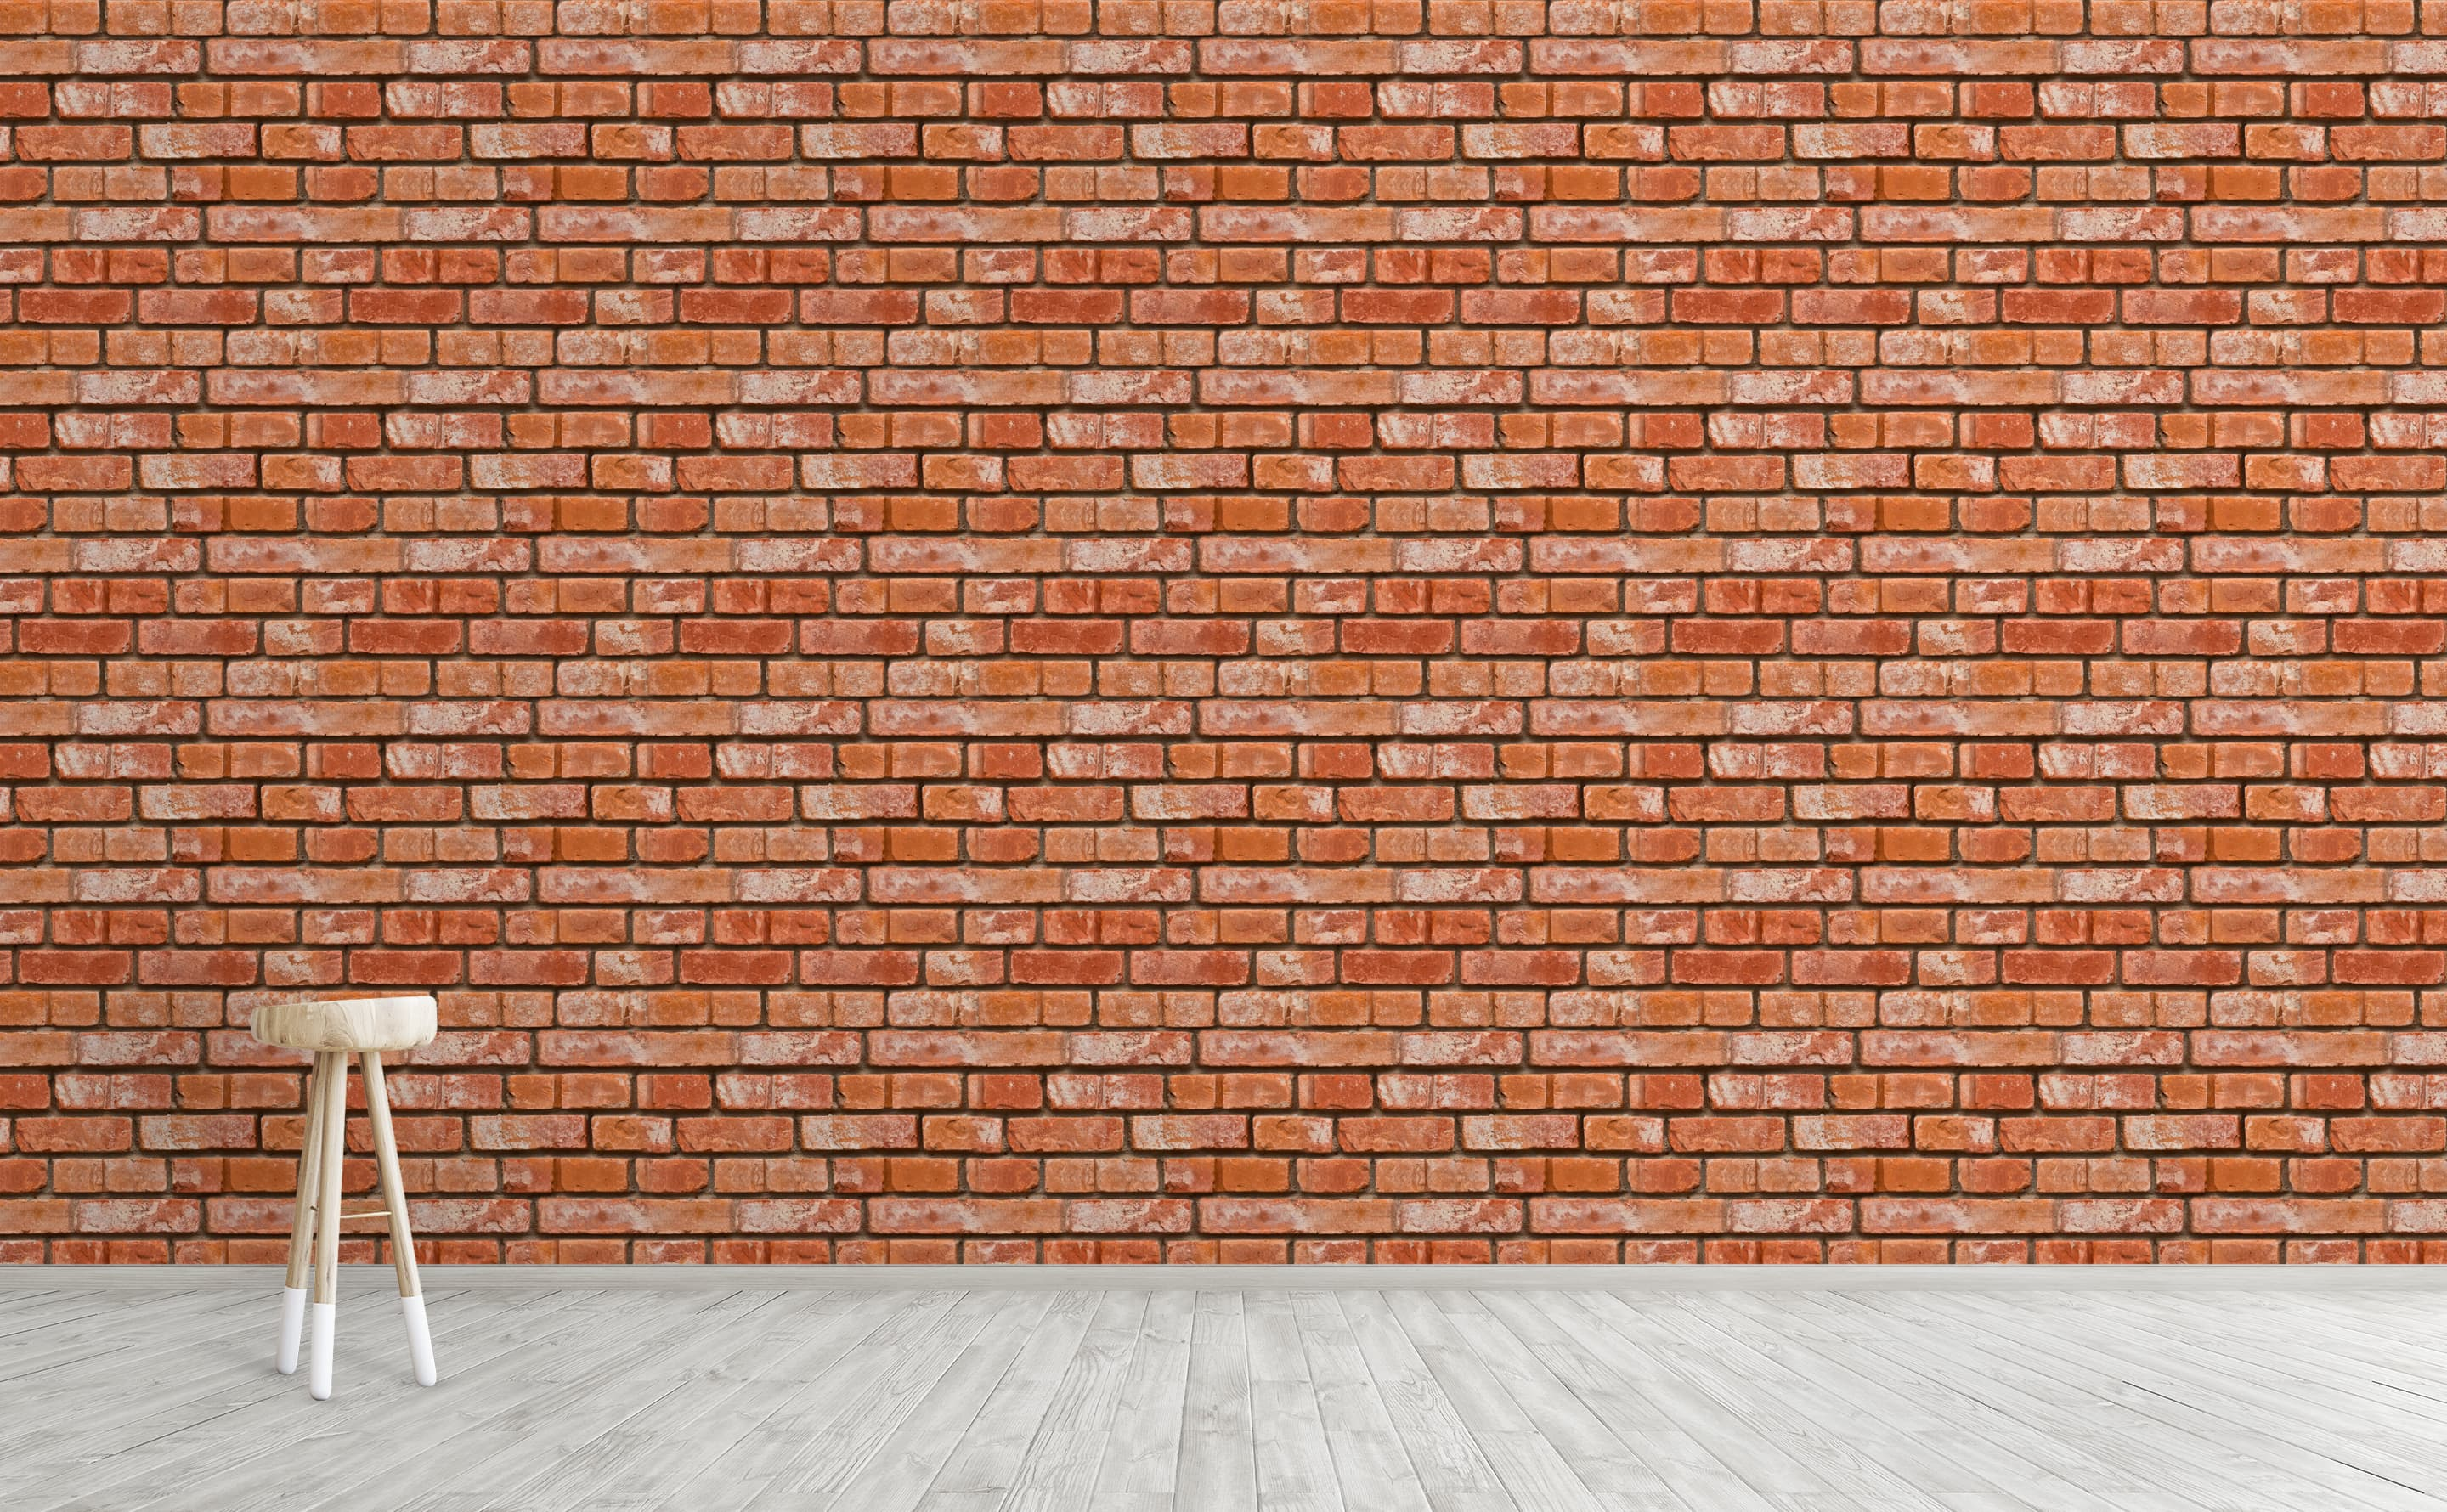 w0267 1s Realistic Bricks Removable Peel and Stick Wallpaper For Interior Walls 11